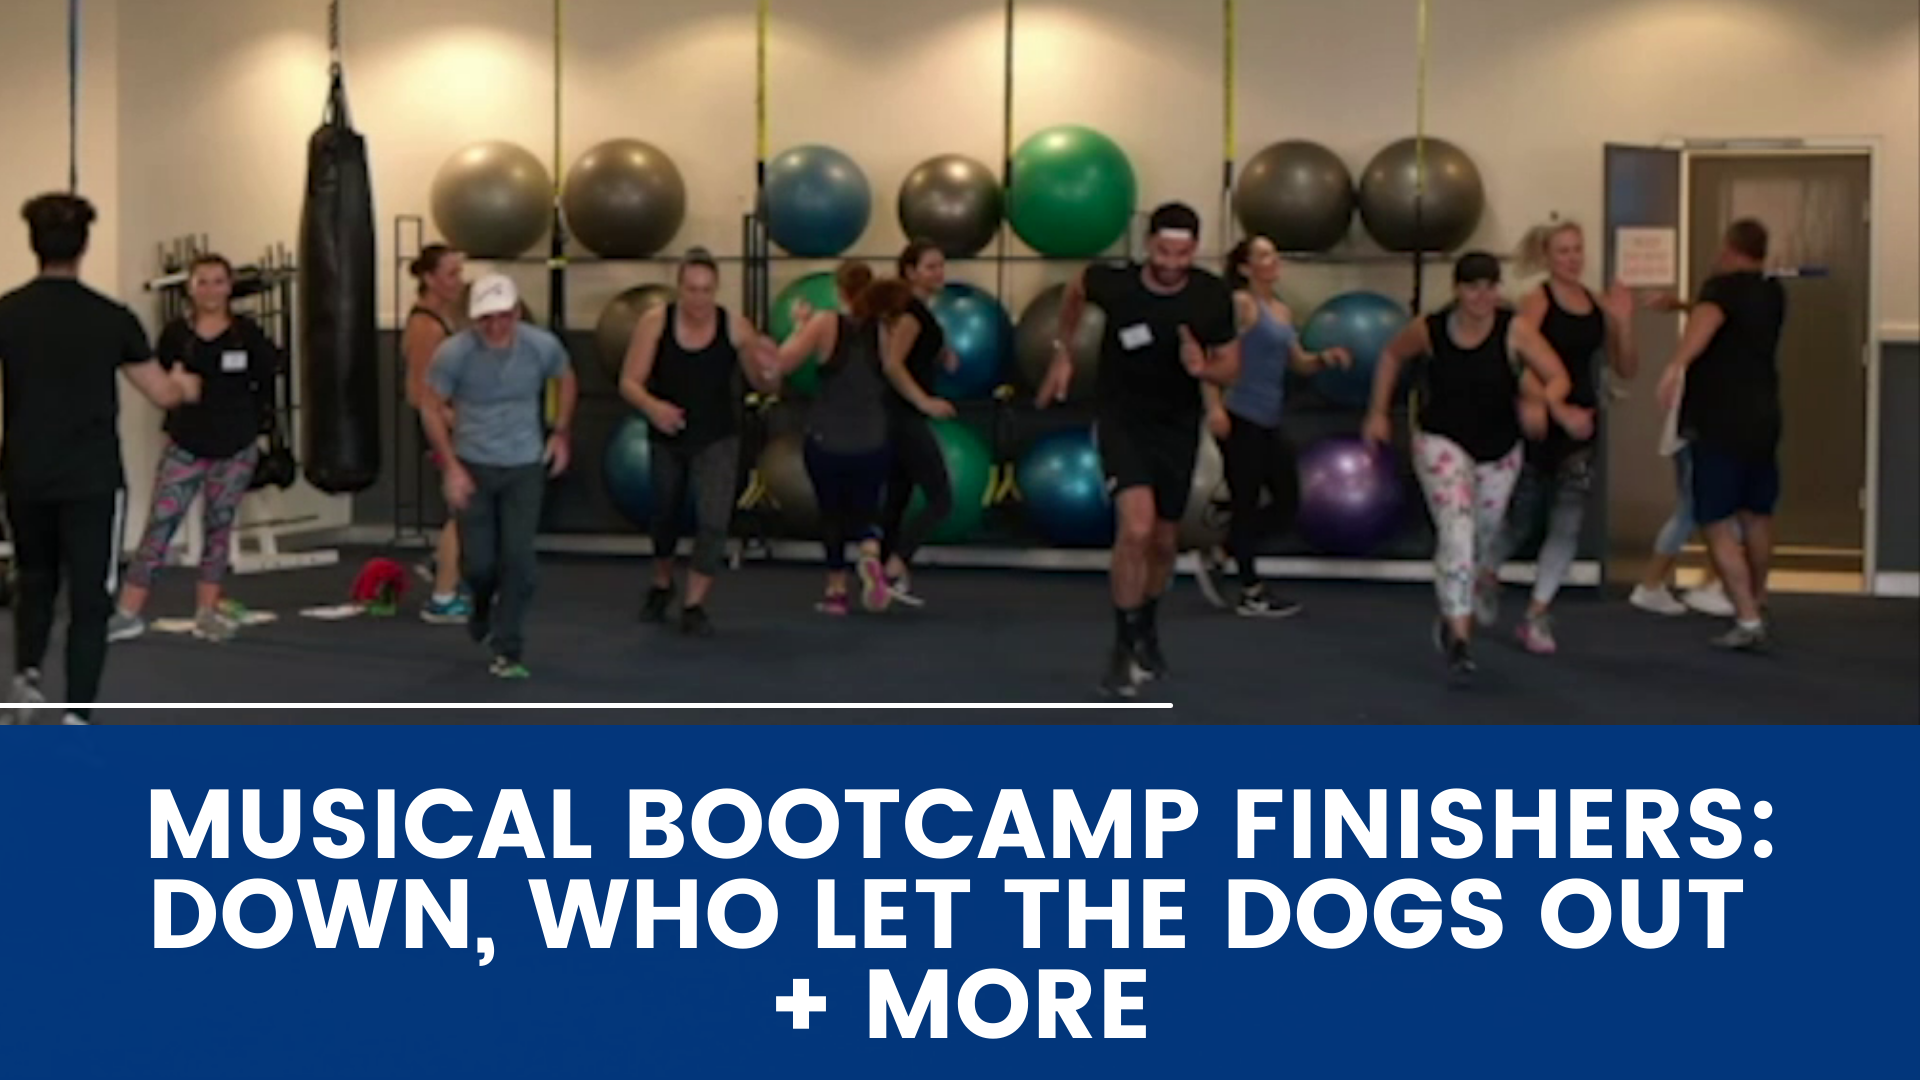 Musical Bootcamp Finishers I Down, Who Let The Dogs Out + More